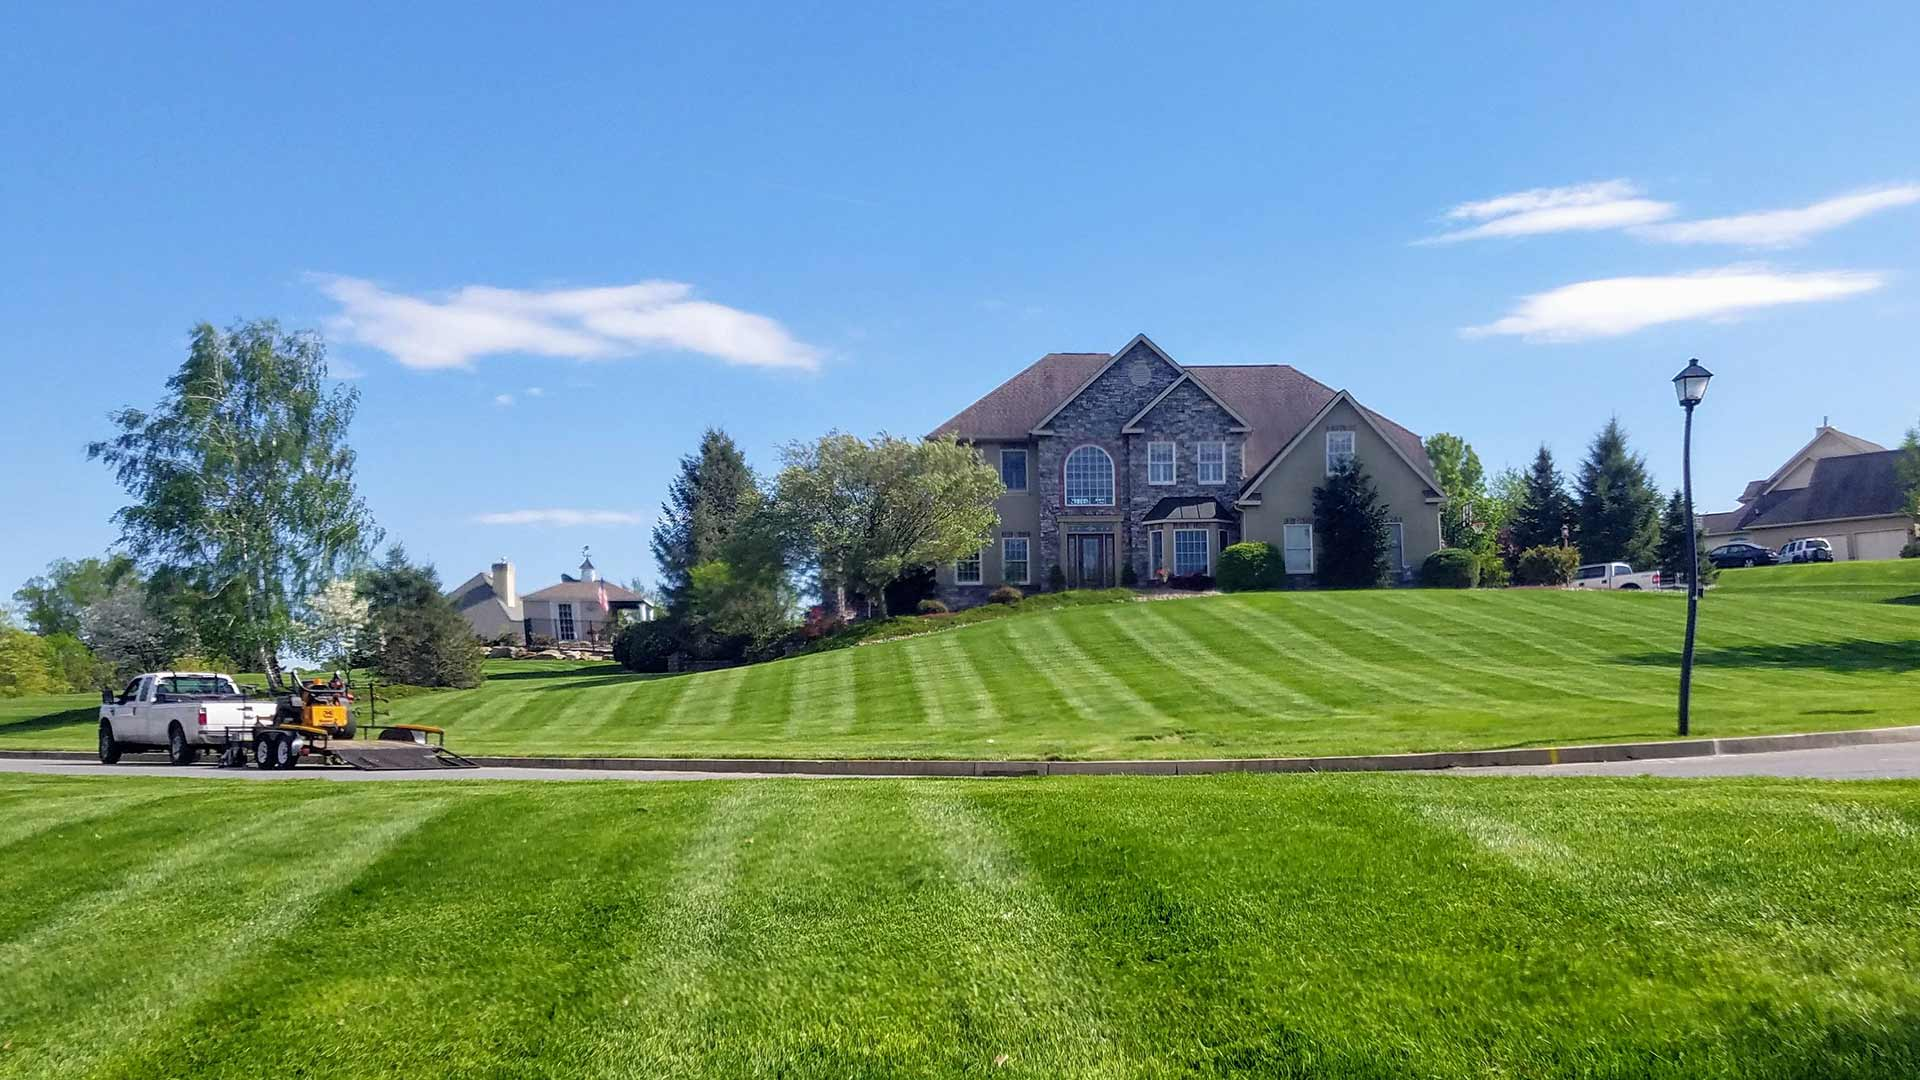 Beautiful, healthy home lawn near Macungie, Pennsylvania.